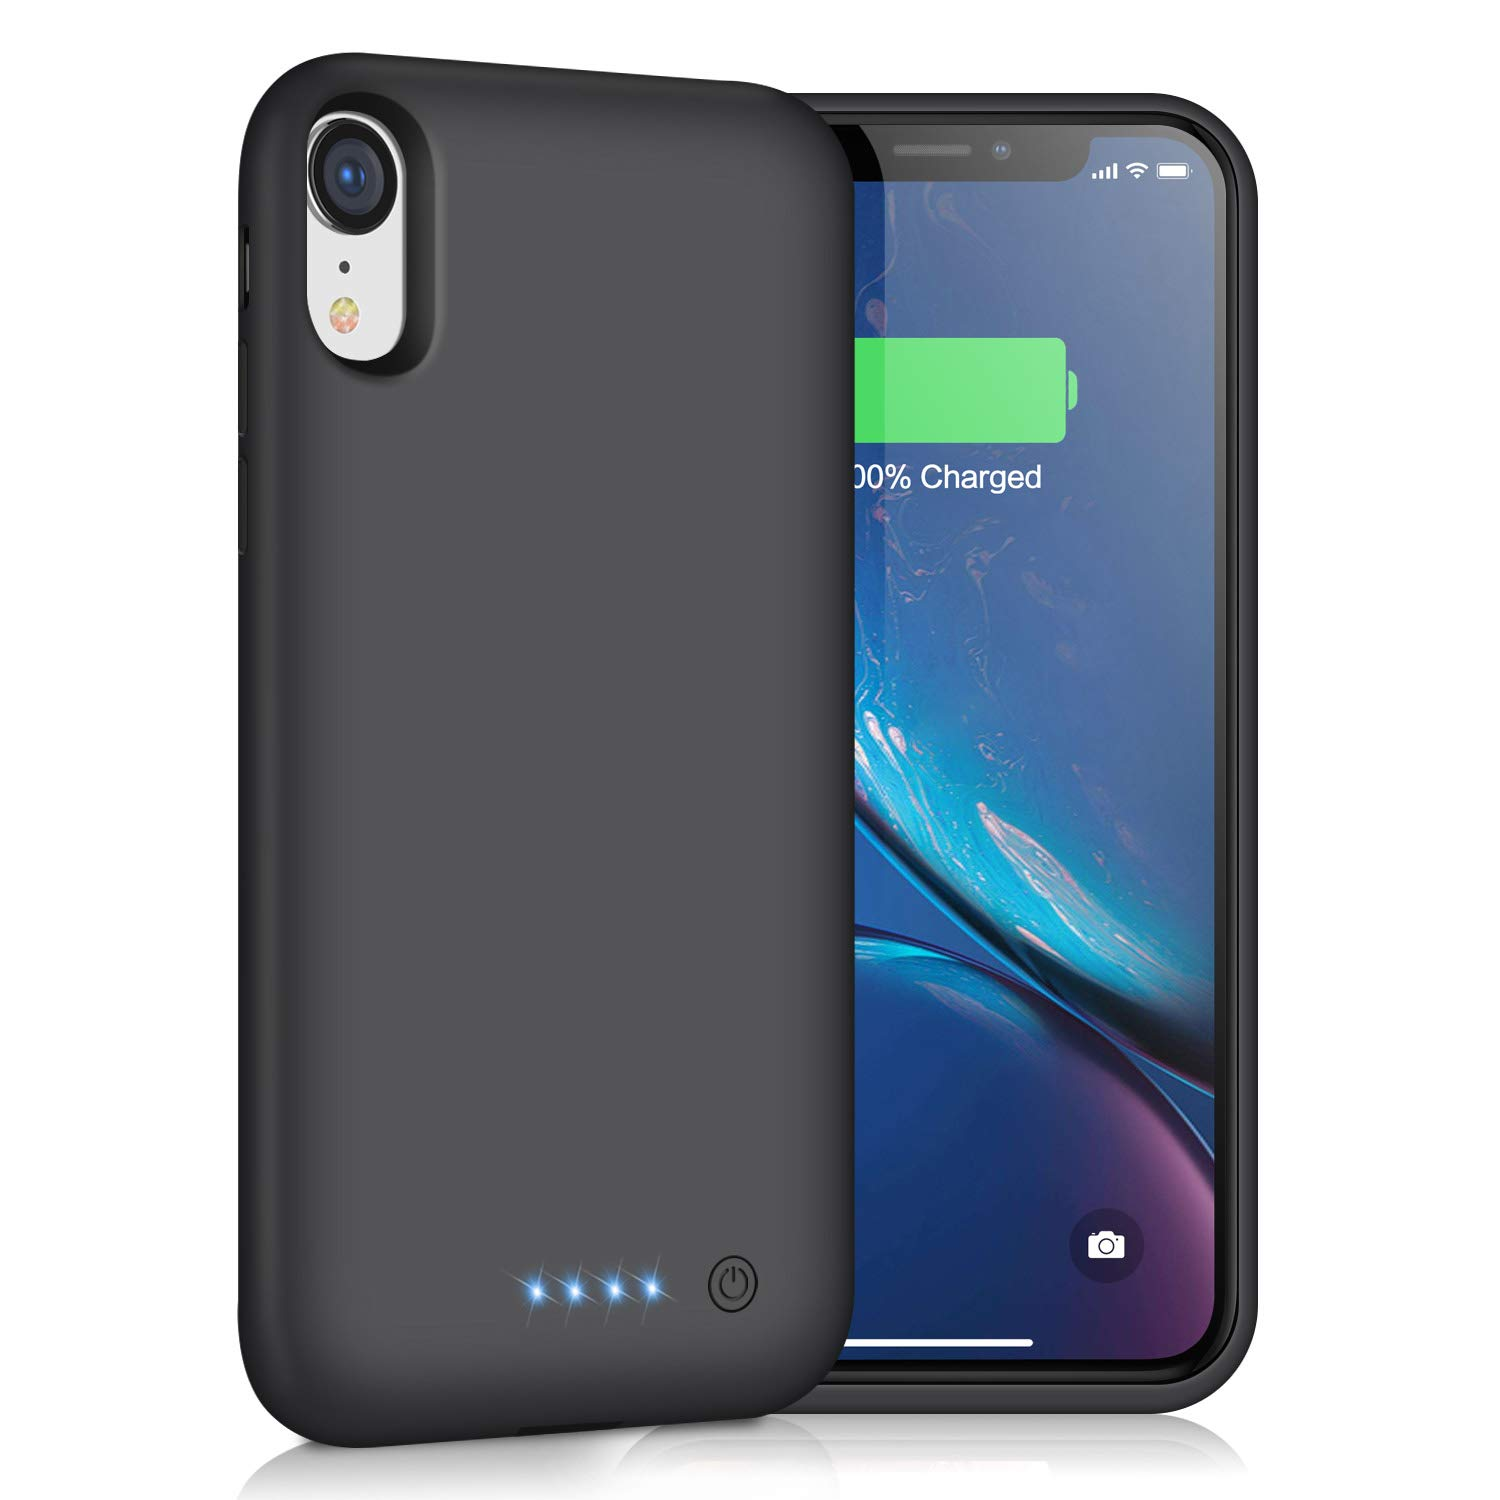 Funda Con Bateria de 6800mah para Apple Iphone Xr TRSWYOP [7HRBBRY3]